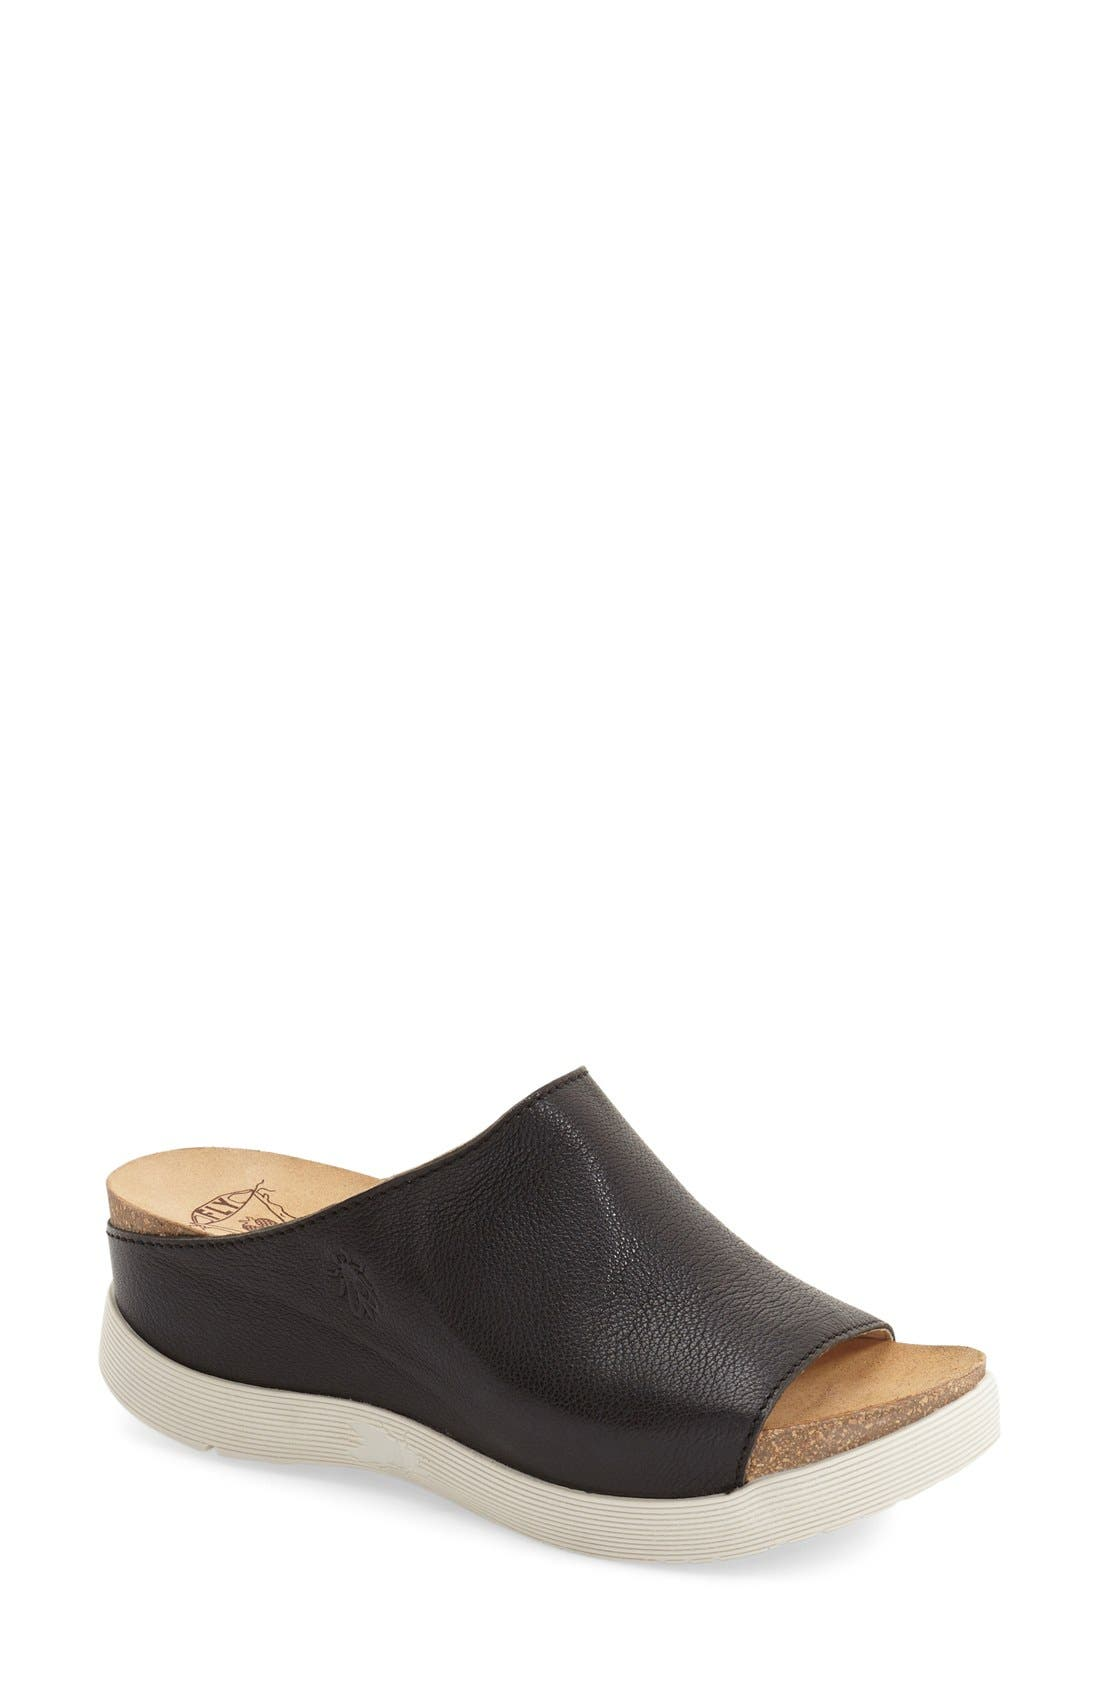 Fly London 'Wigg' Platform Wedge Slide Sandal (Women)